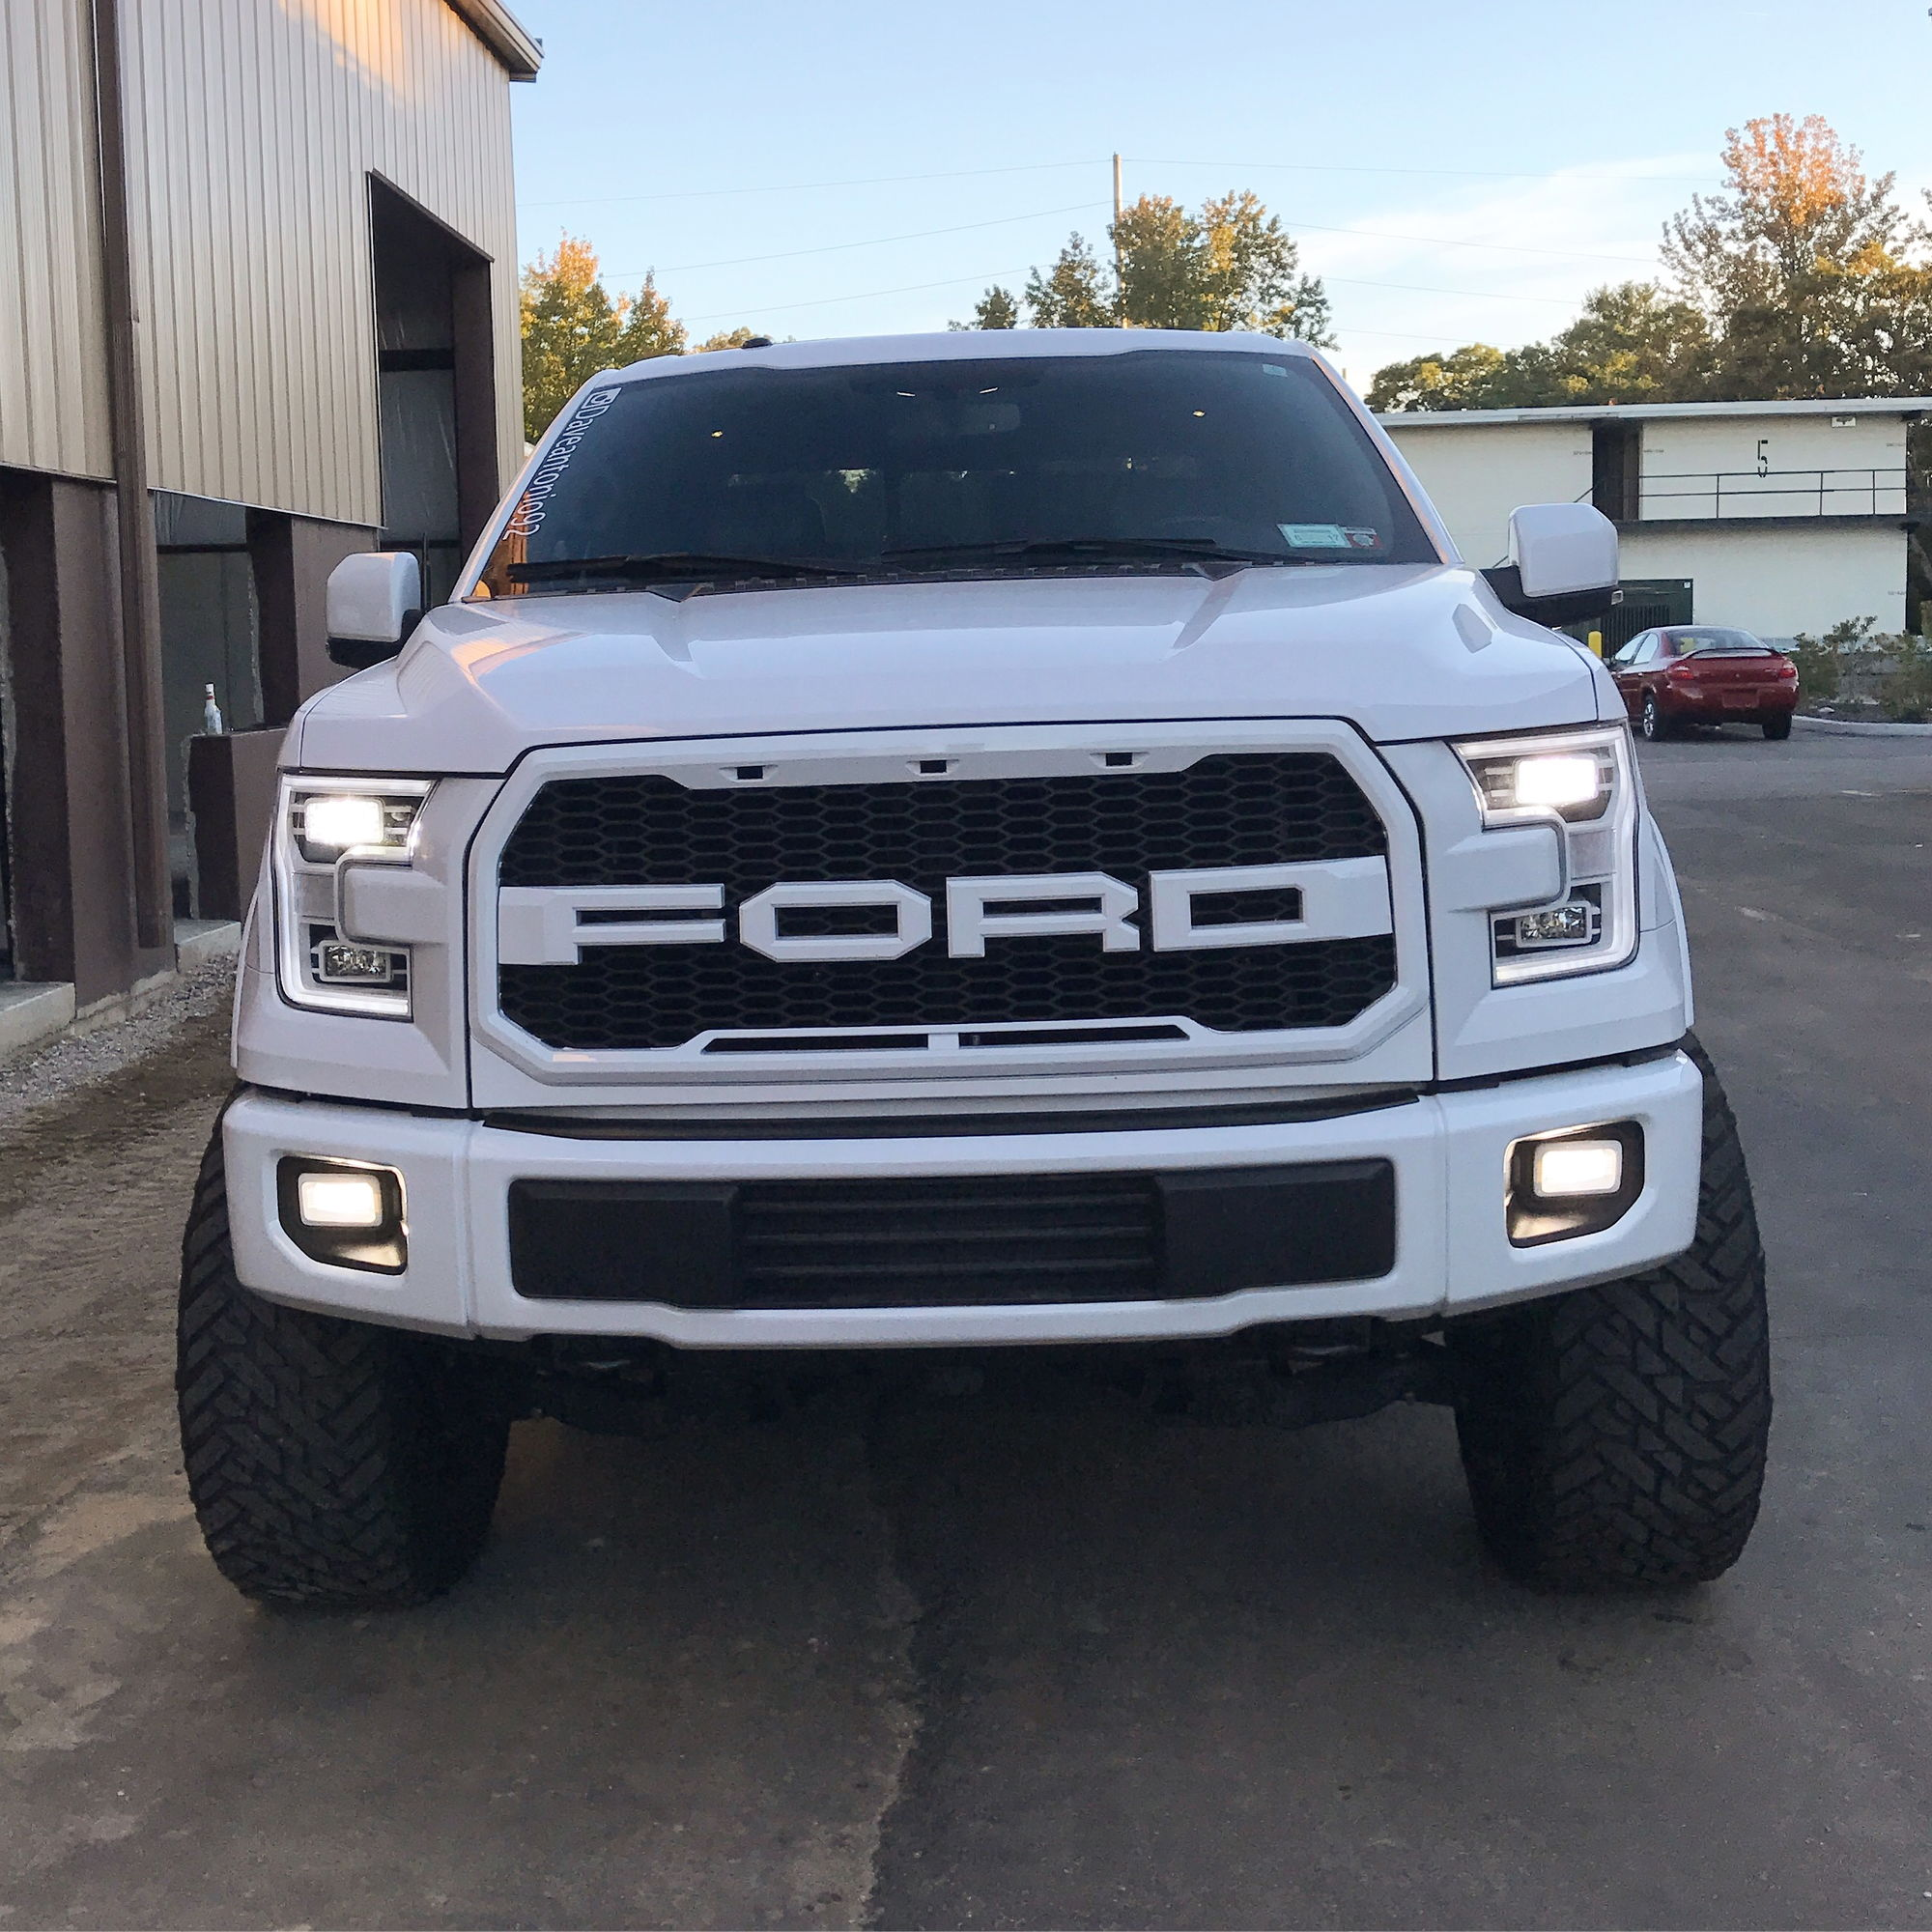 grill options raptor style grill page 129 ford f150 forum community of ford truck fans. Black Bedroom Furniture Sets. Home Design Ideas